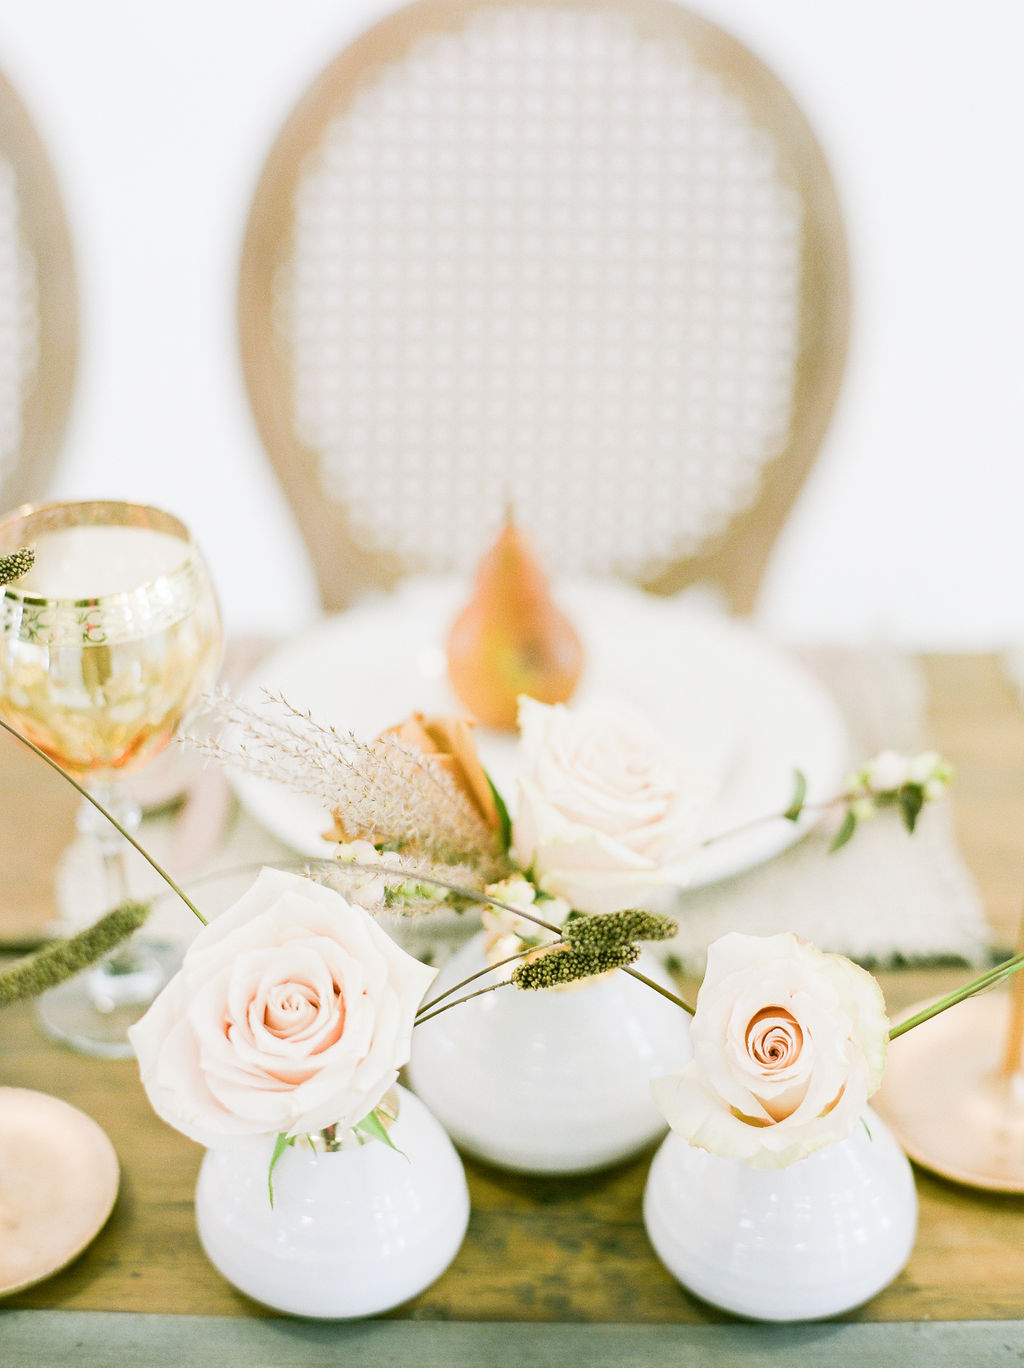 Golden pears and blush roses sot pm white dishes at wedding table